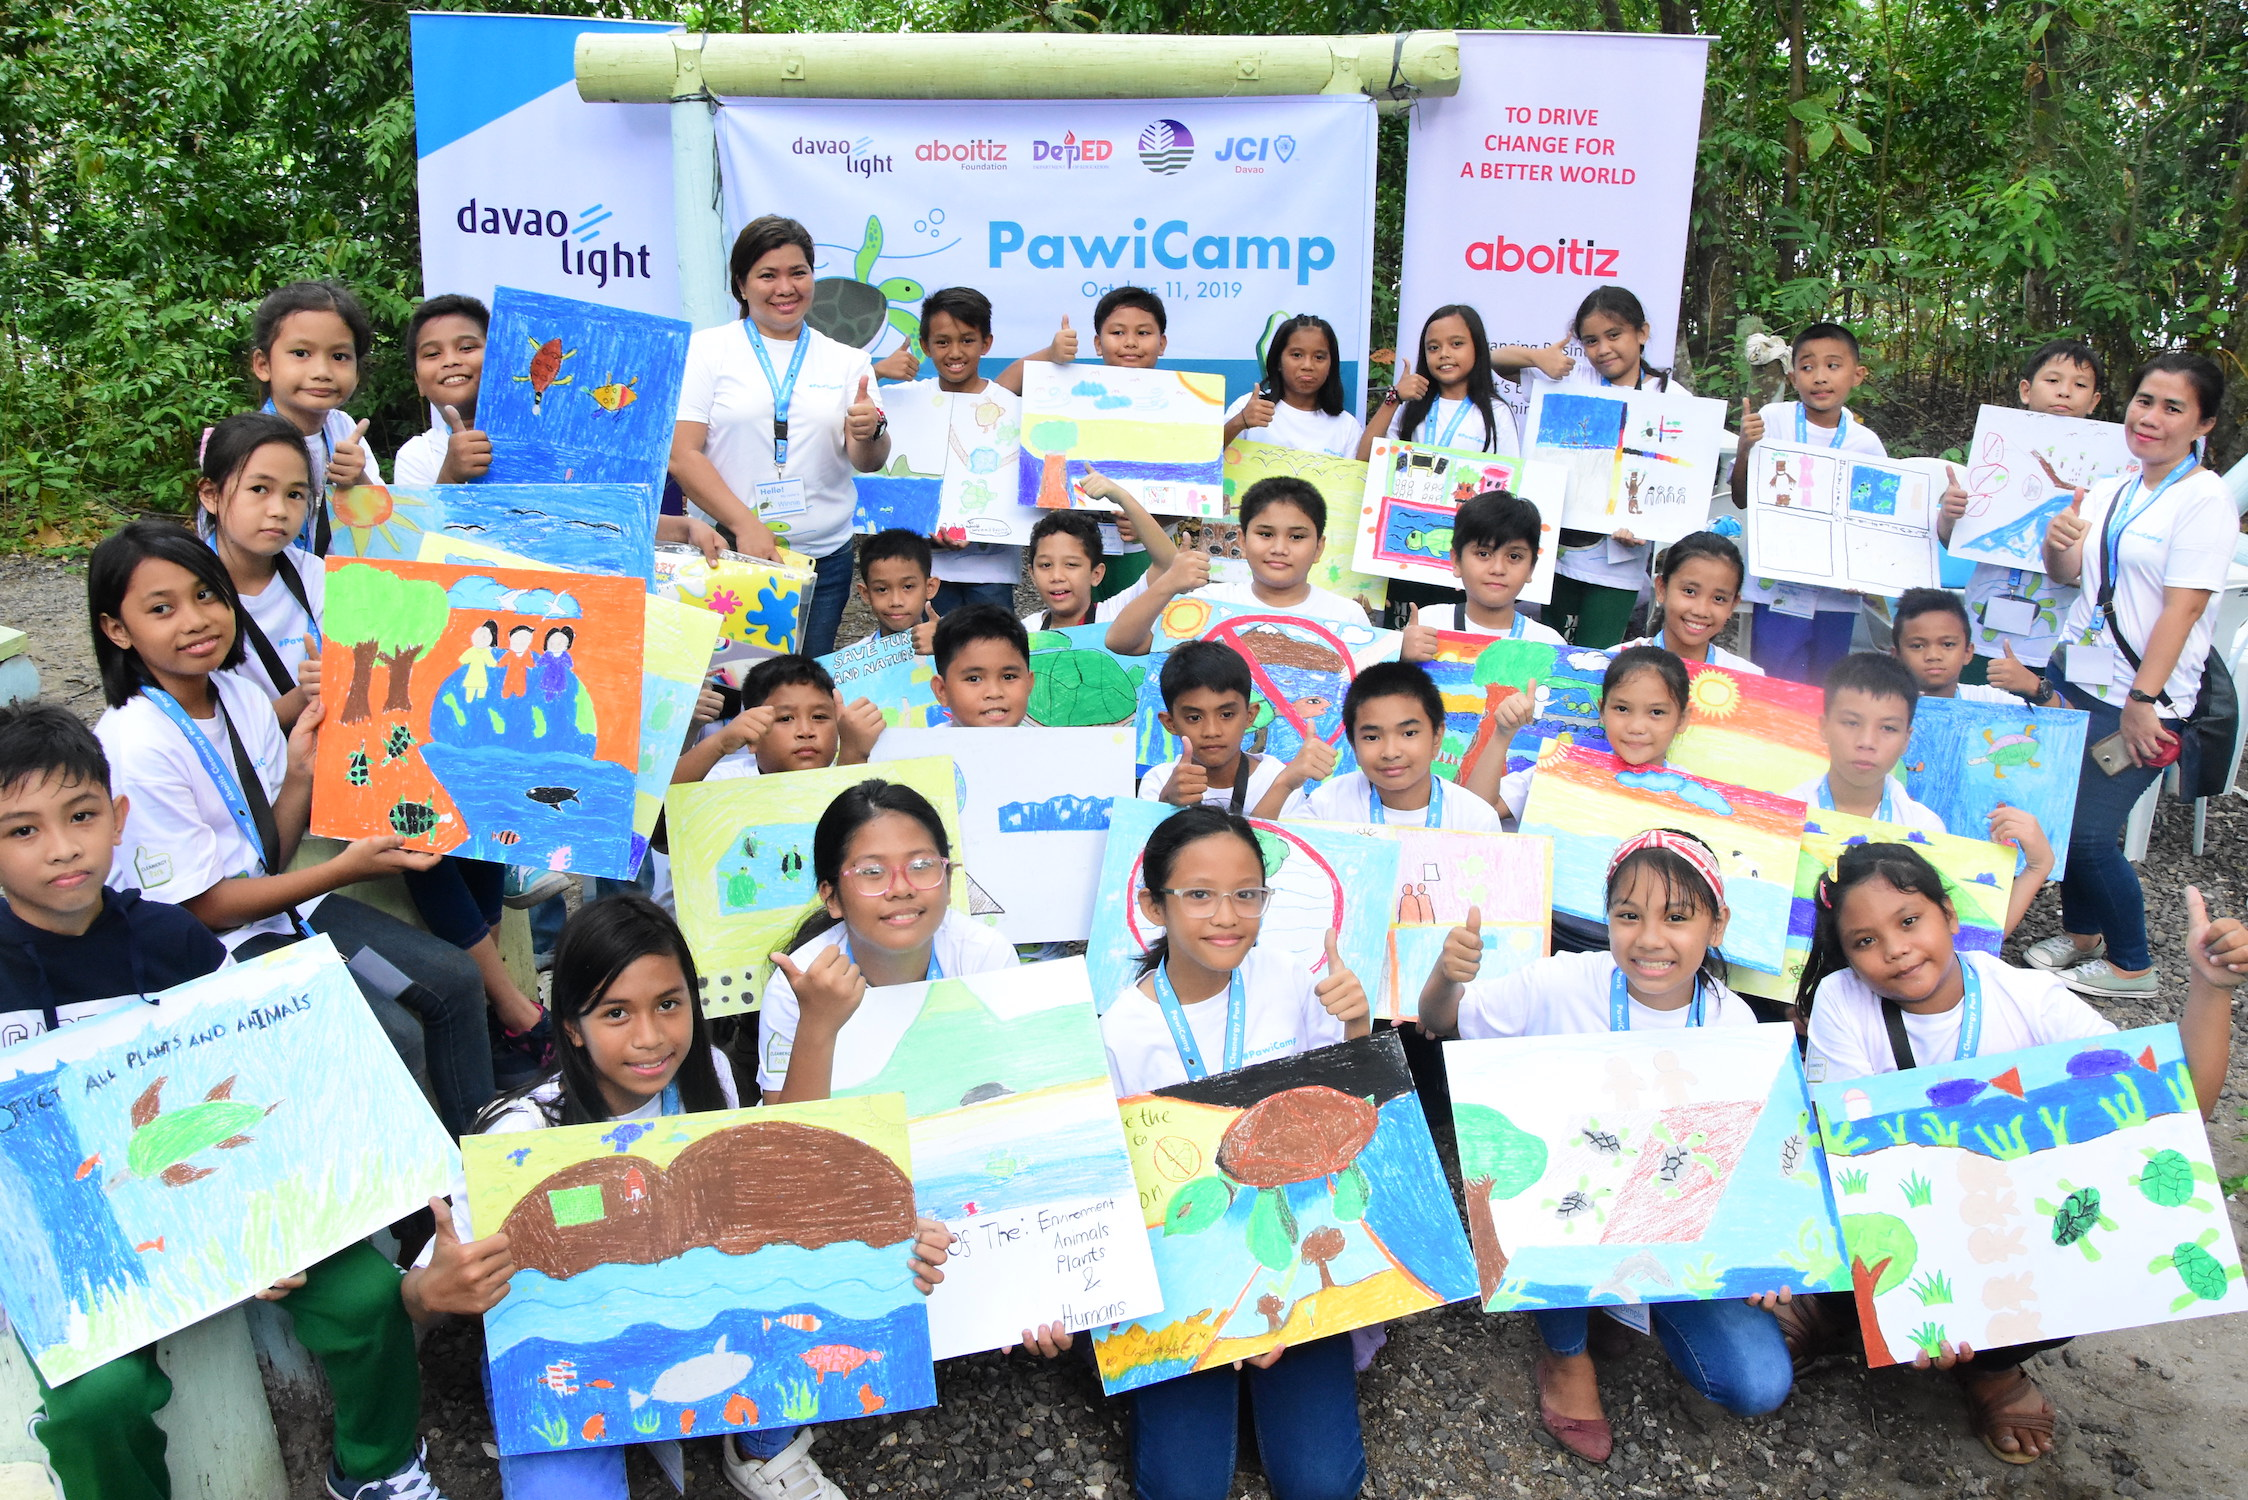 ABOITIZ PAWICAMP-ERS HELP SAVE PAWIKANS. Thirty Davao City students signed up for the first-ever Aboitiz PawiCAMP, a day camp dedicated to the protection and preservation of sea turtles or pawikan in the area. Seen here are the student-campers showcasing drawings of activities that they can do to help save the endangered pawikan.